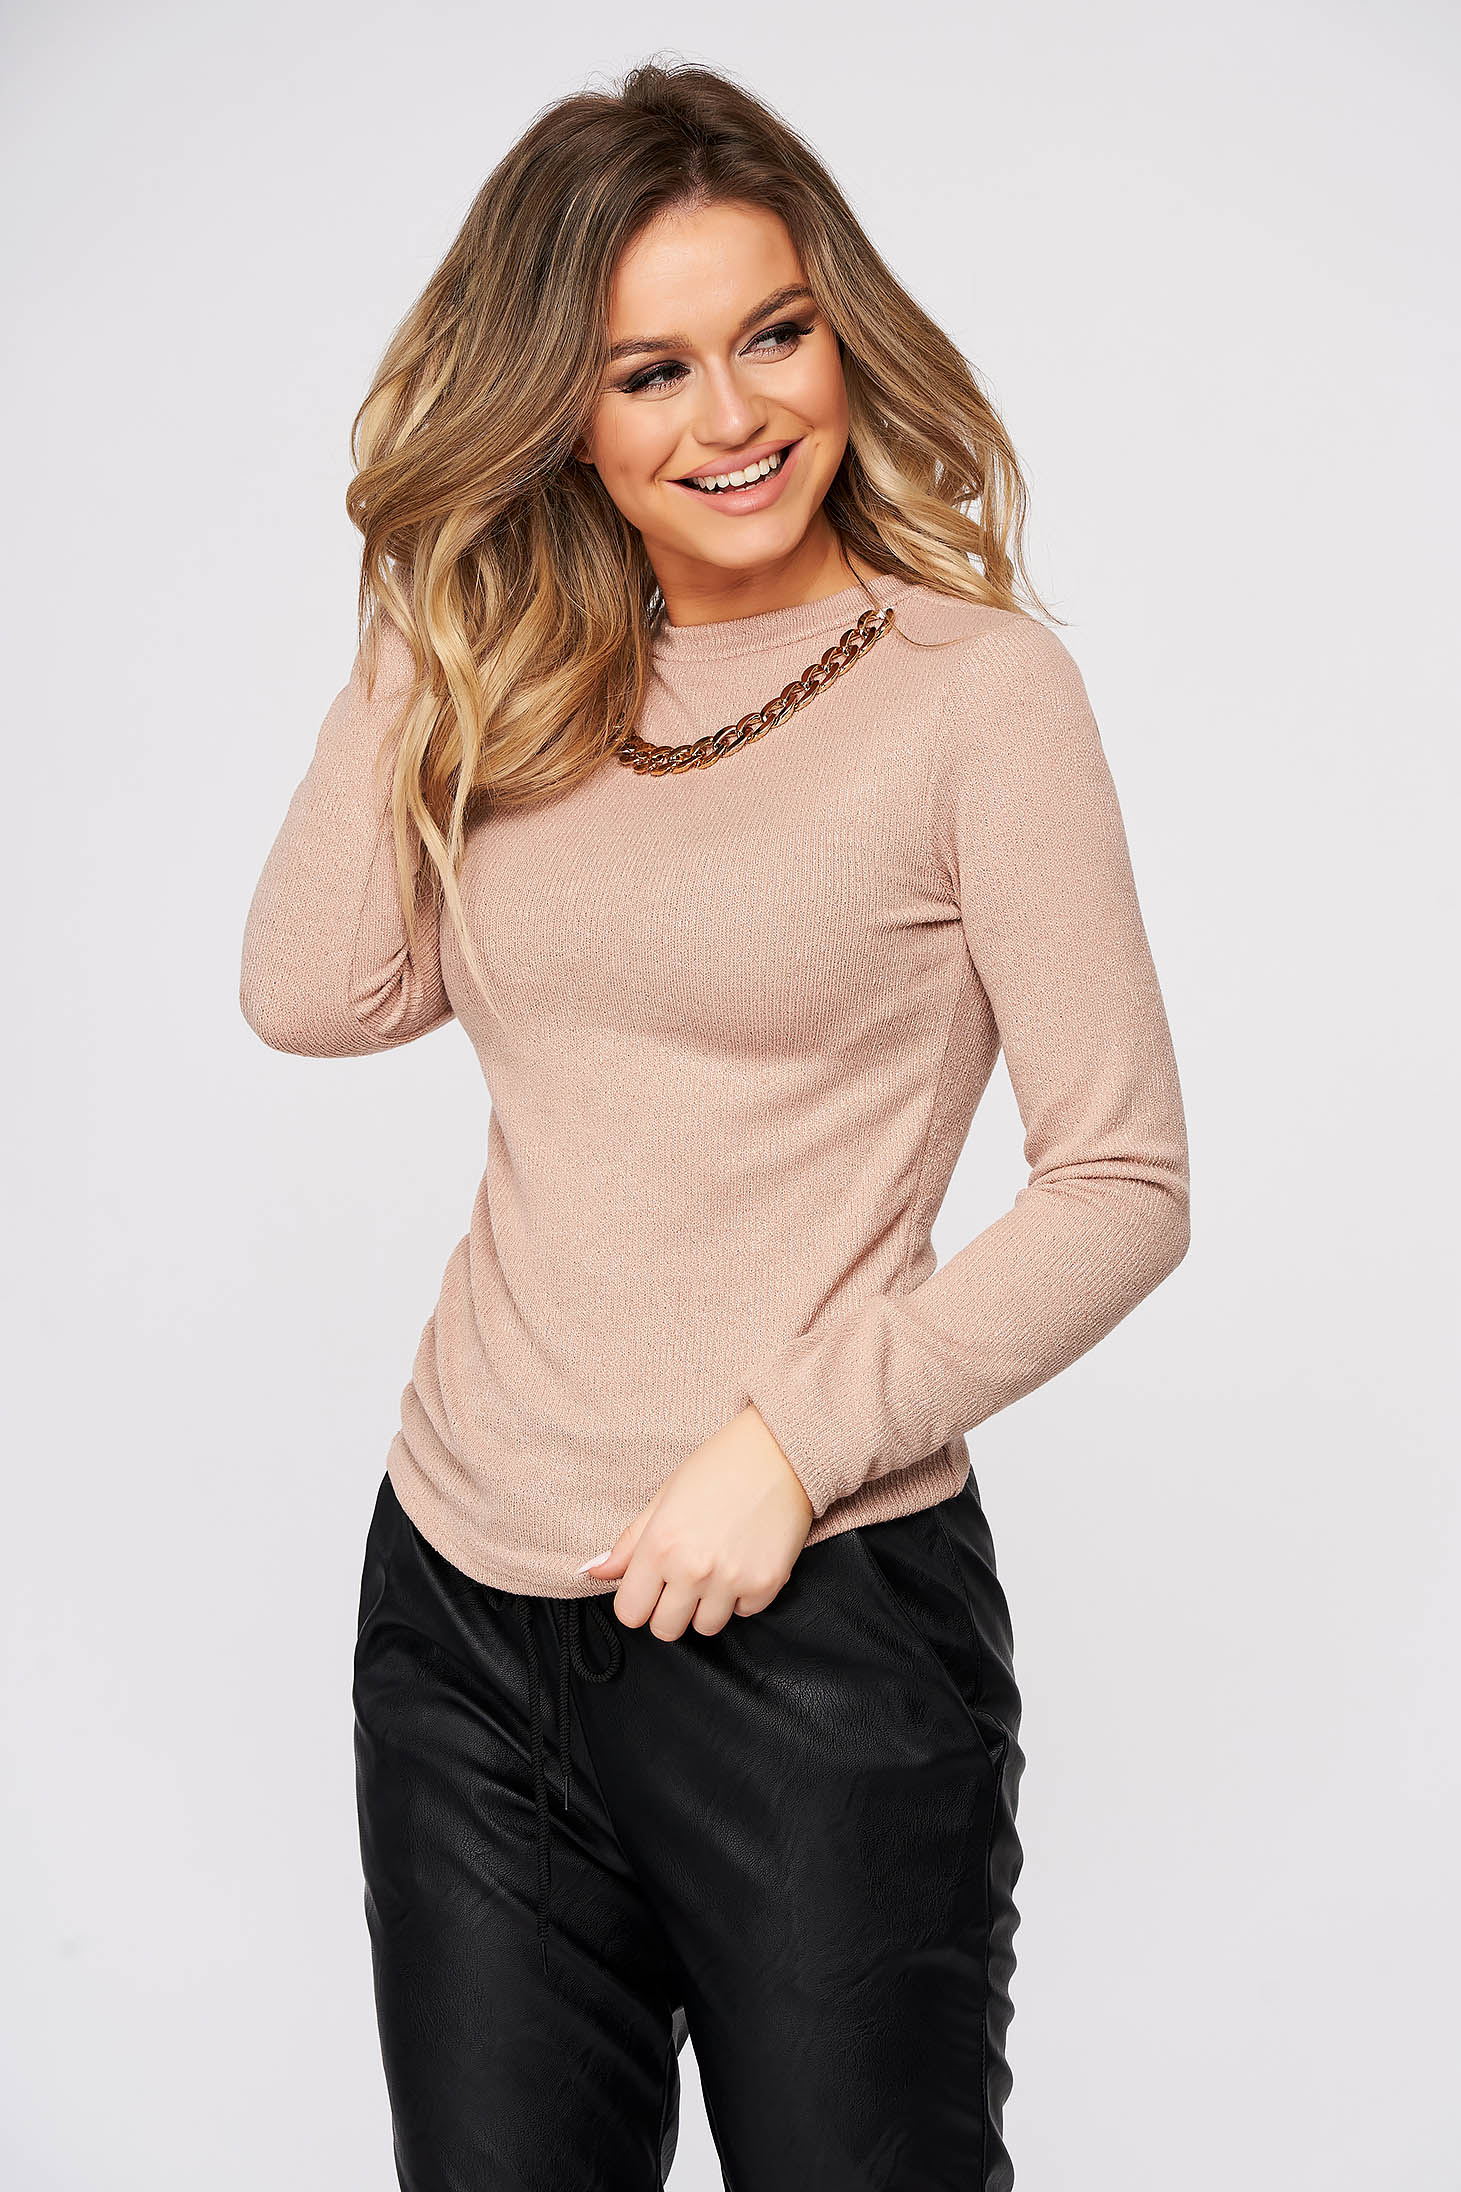 Cream sweater casual with tented cut metallic chain accessory knitted fabric